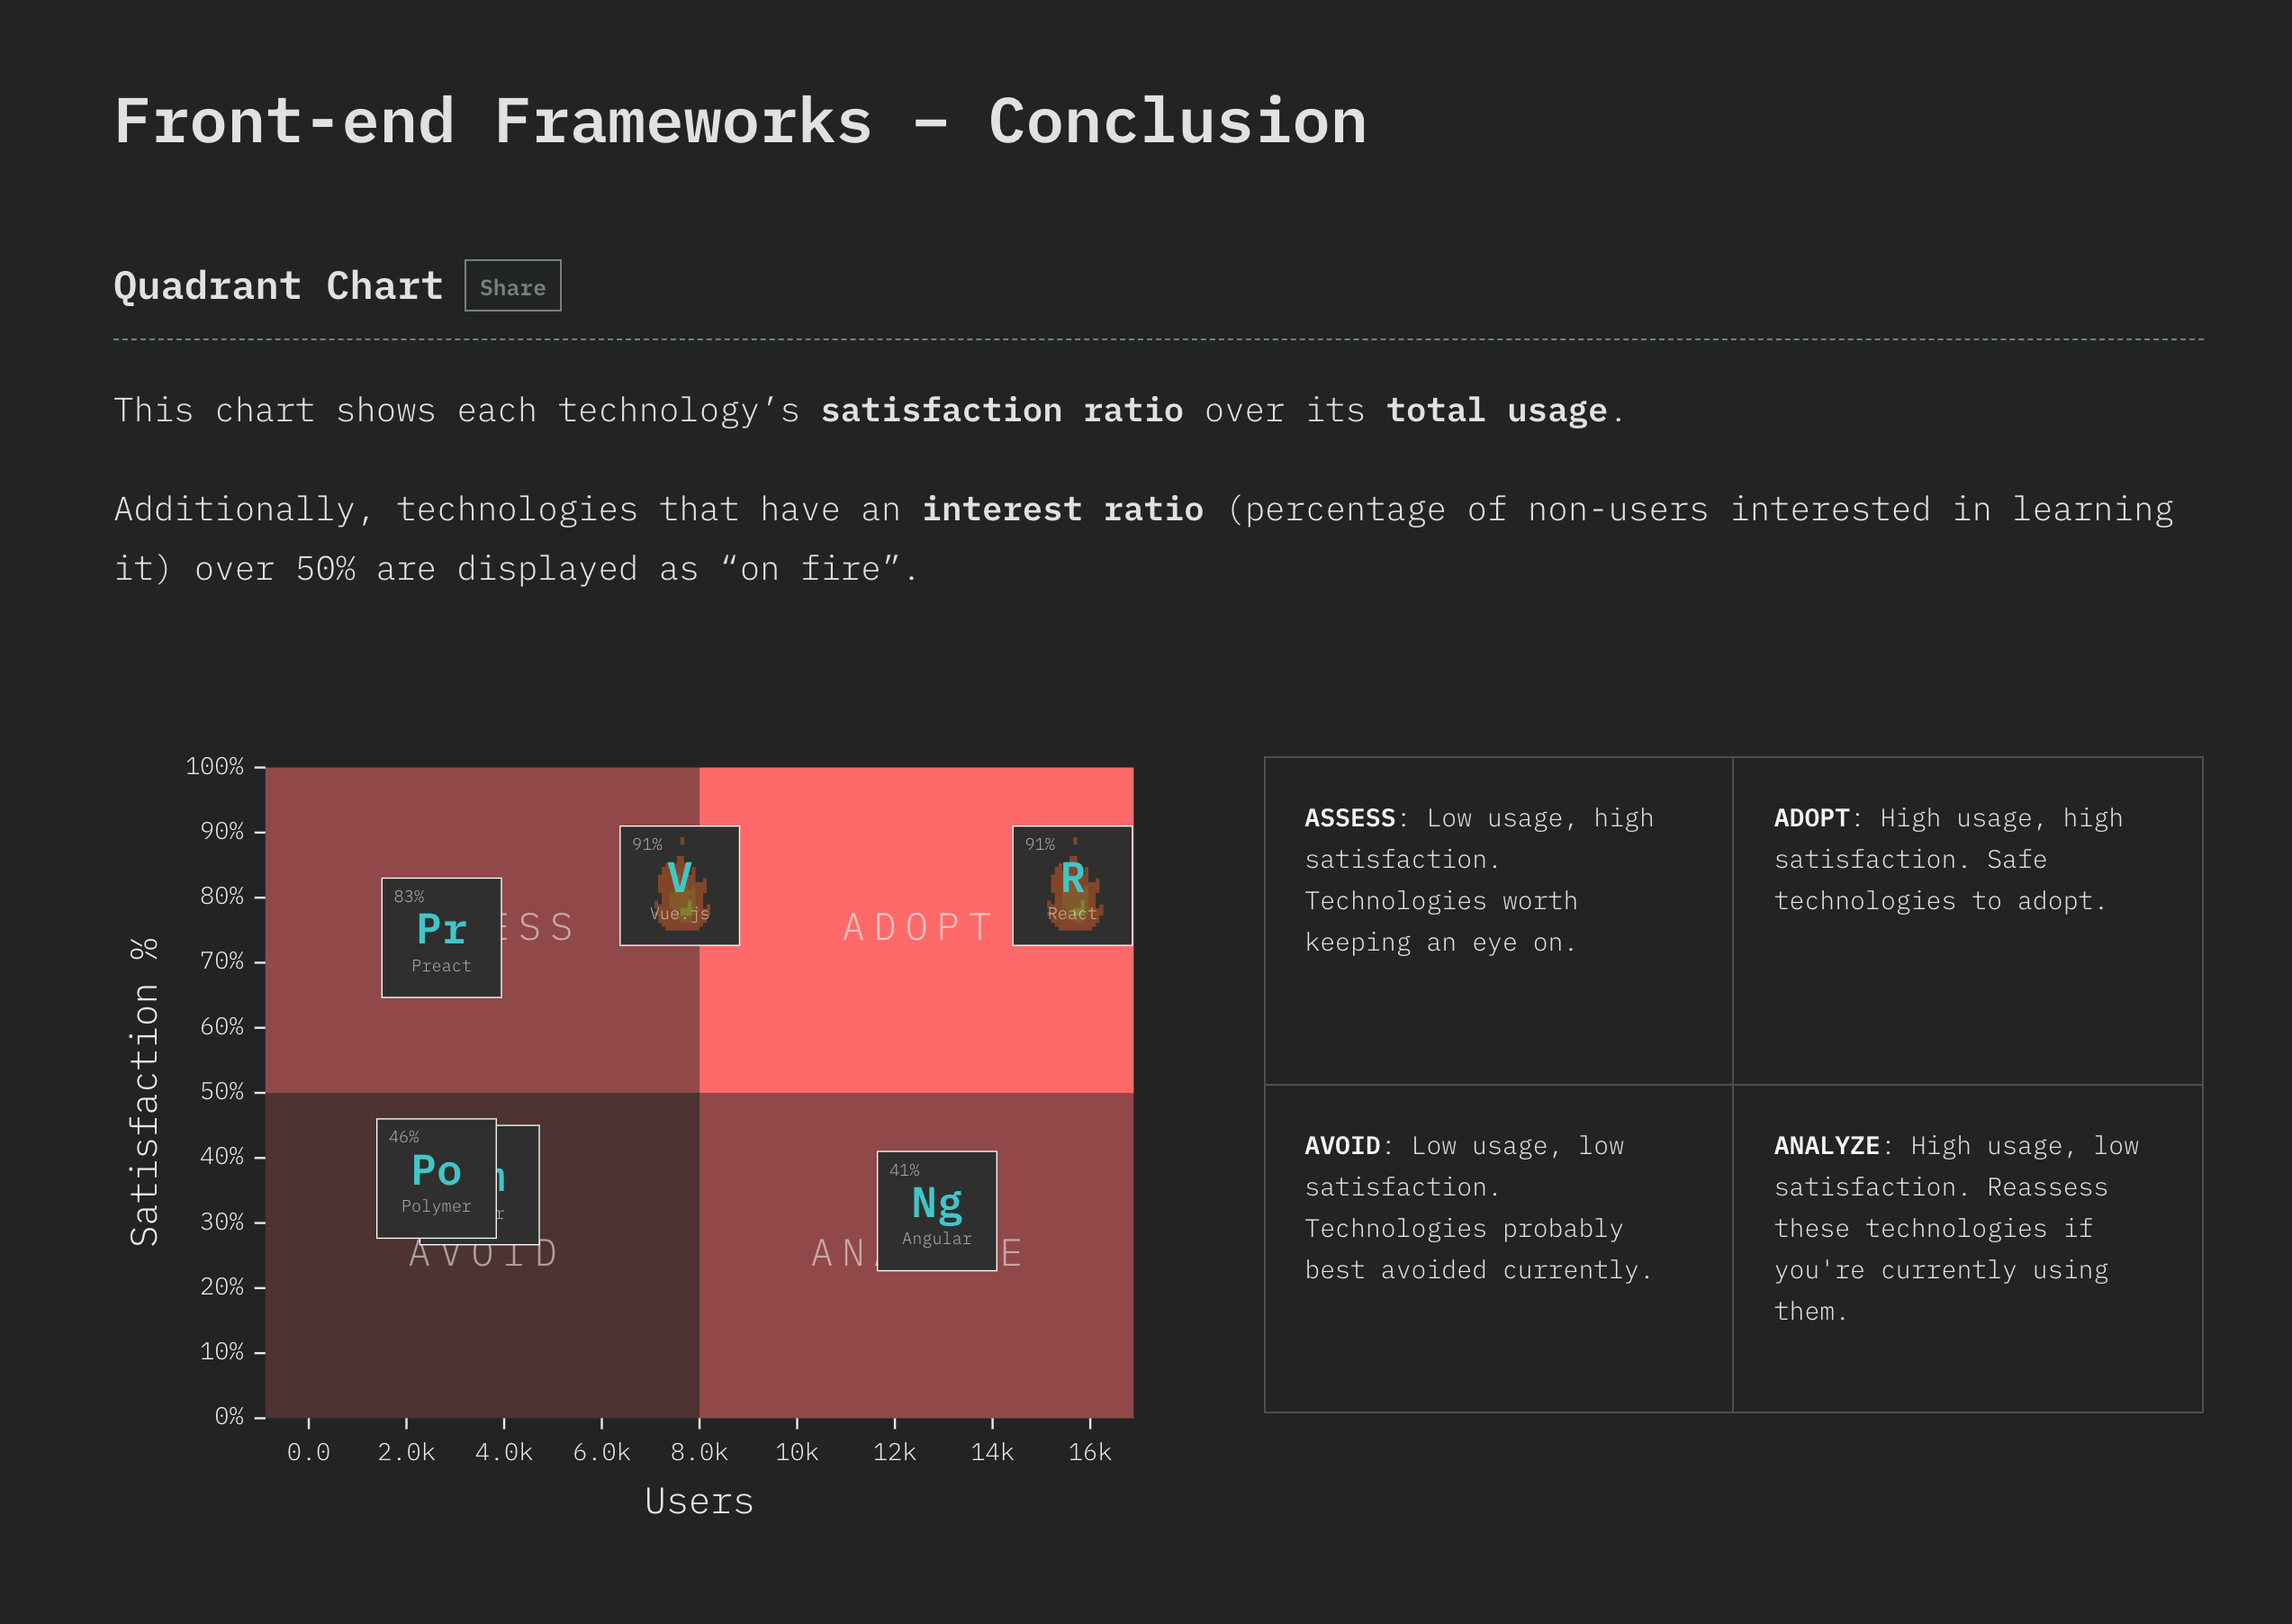 screenshot of overall conclusions chart in js survey 2018